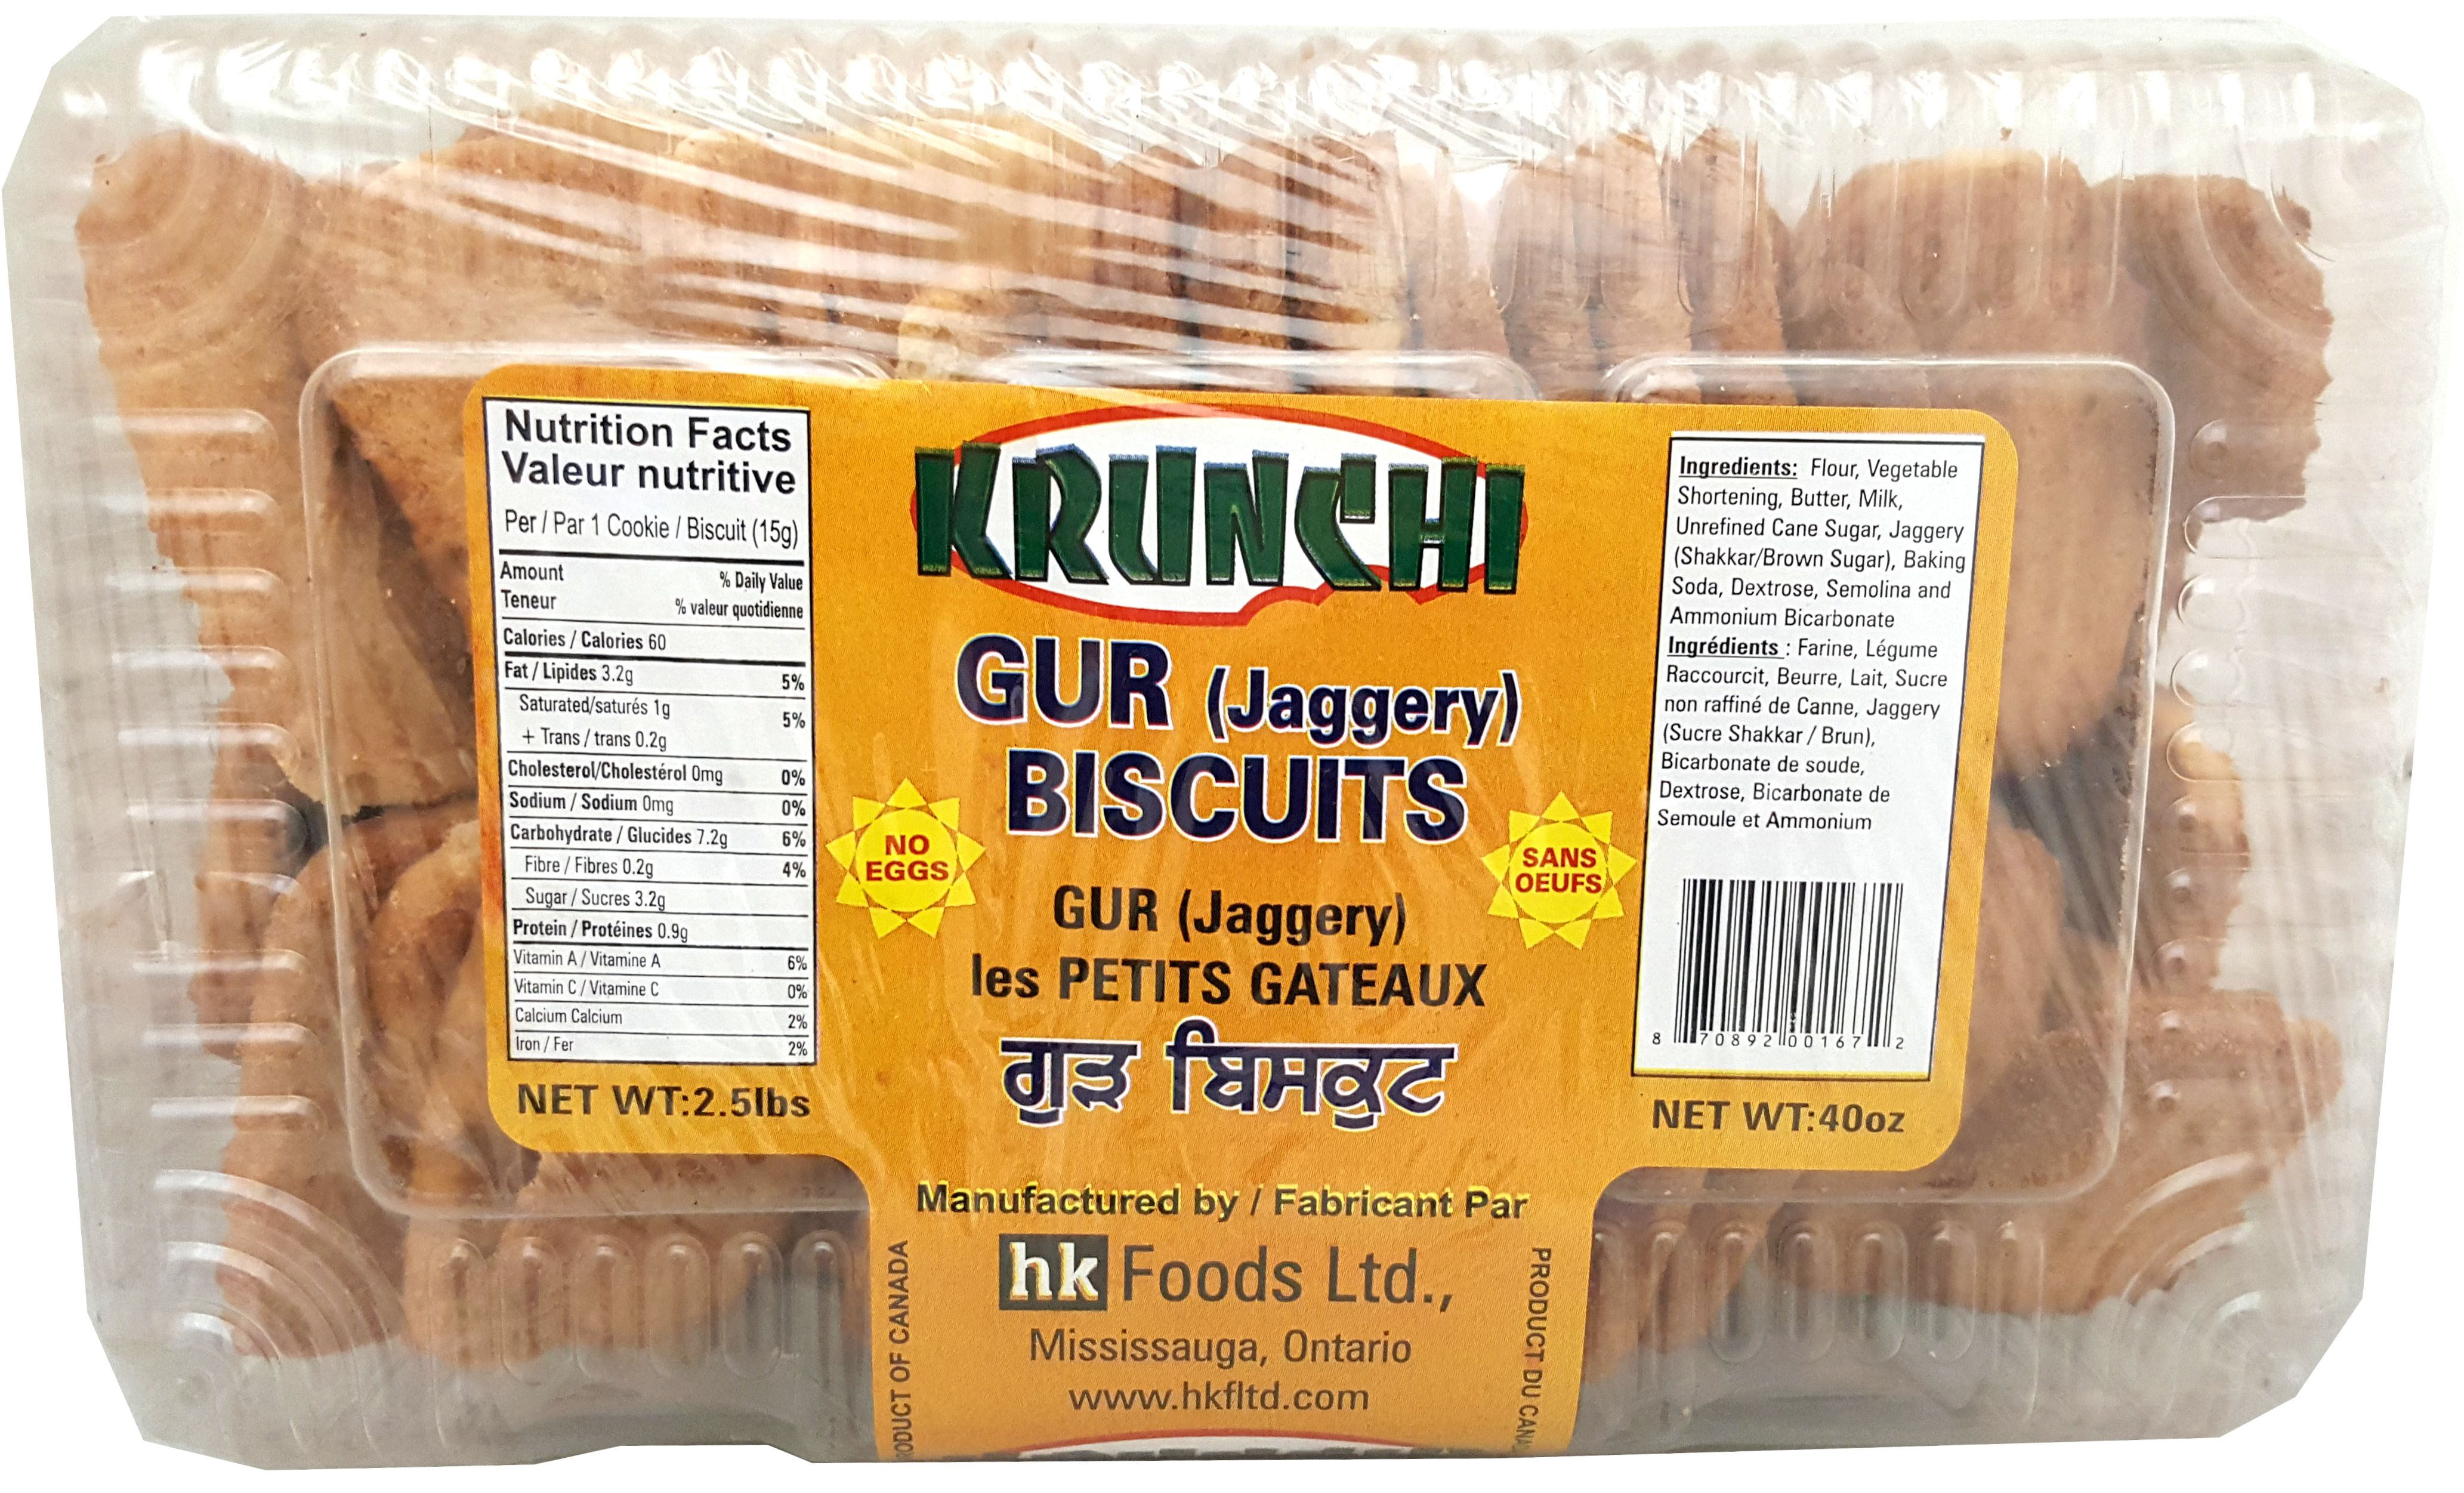 Gur (Jaggery) Biscuits 40oz